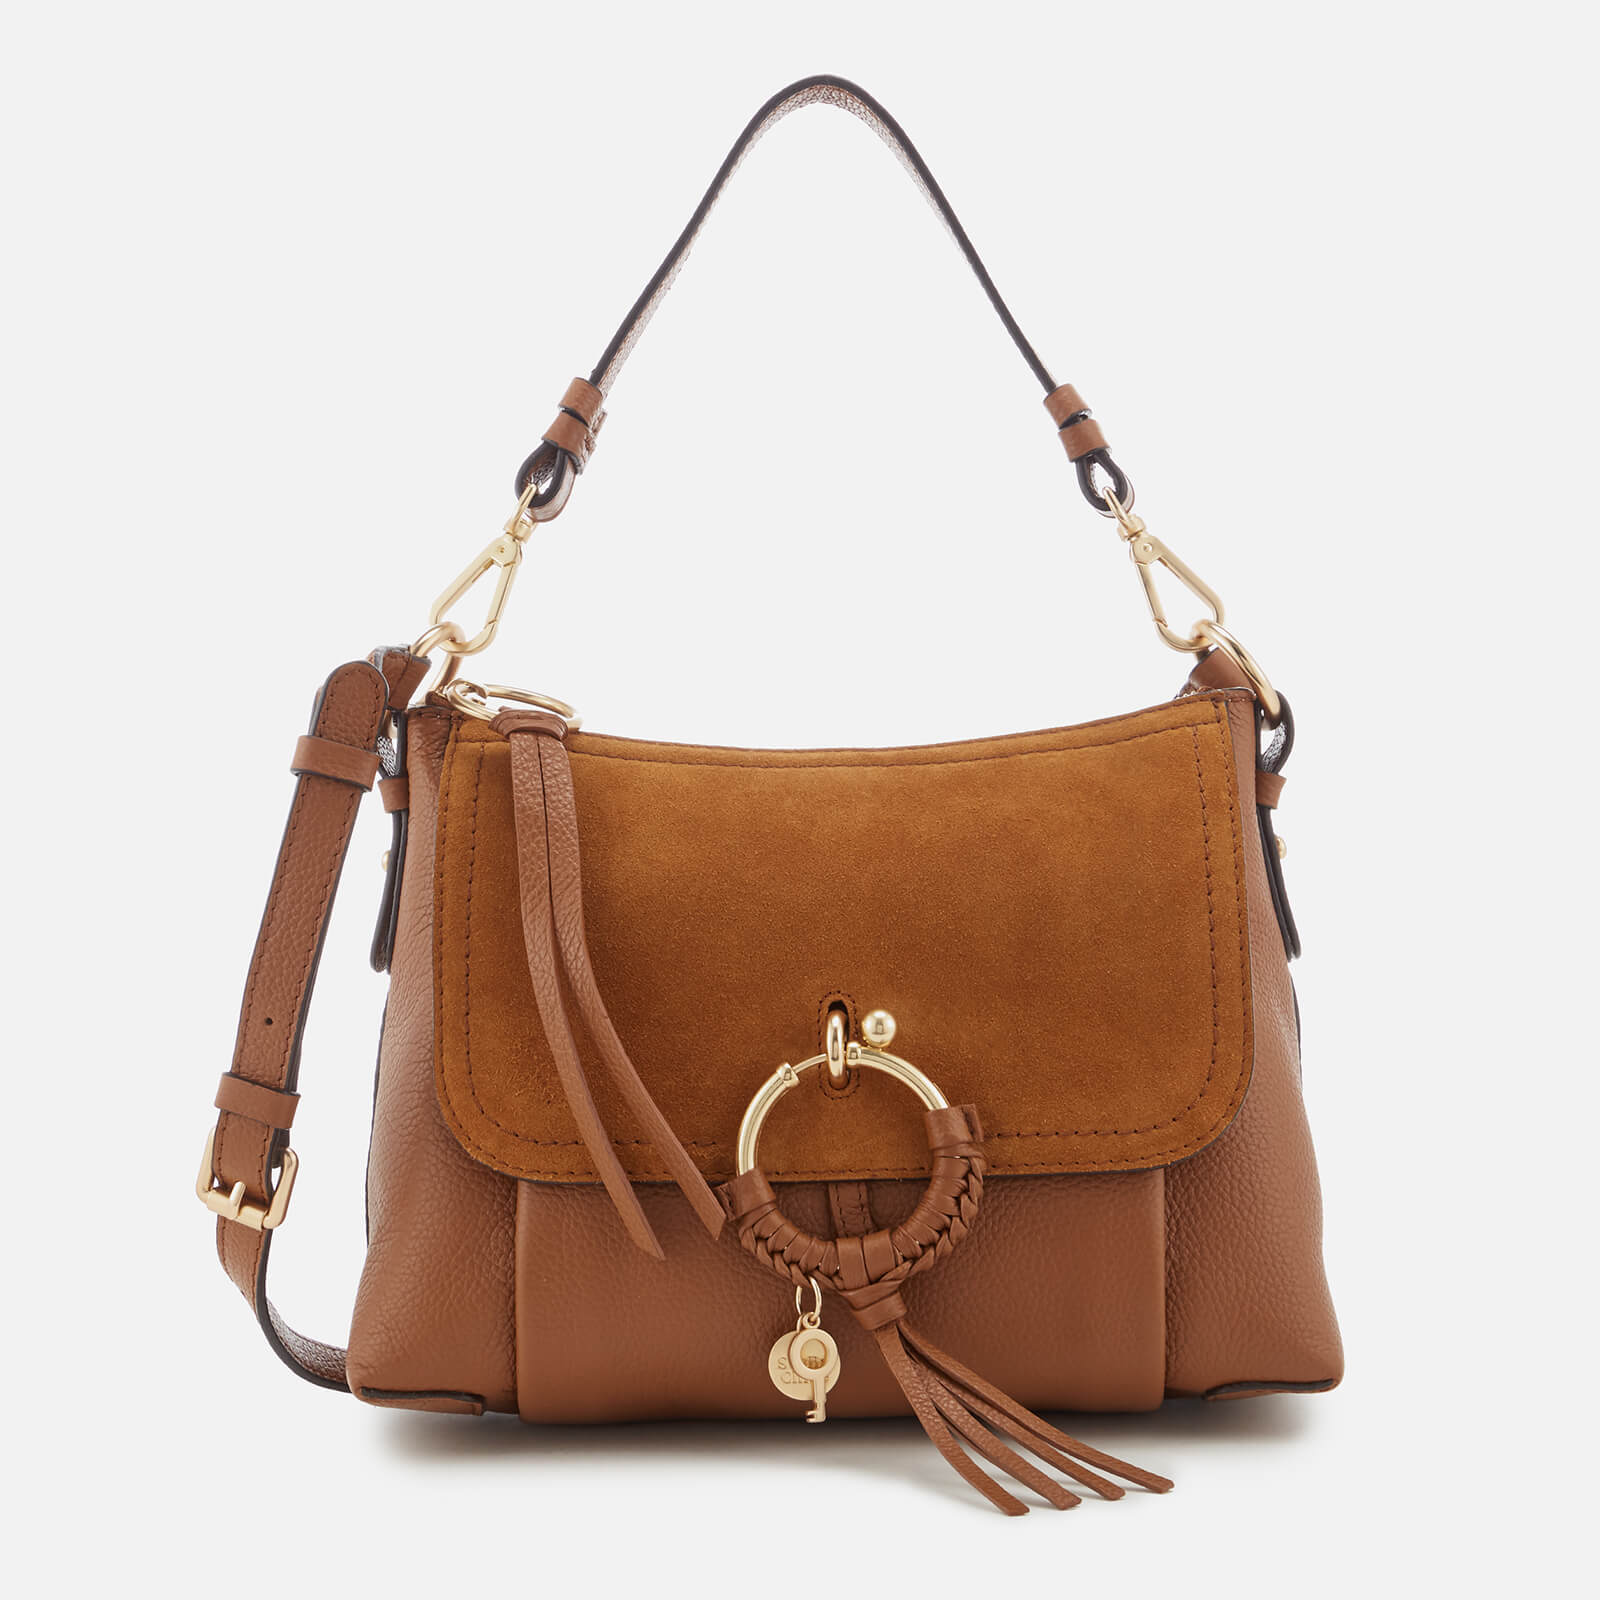 f3081e466102 See By Chloé Women s Joan Hobo Bag - Caramello - Free UK Delivery over £50